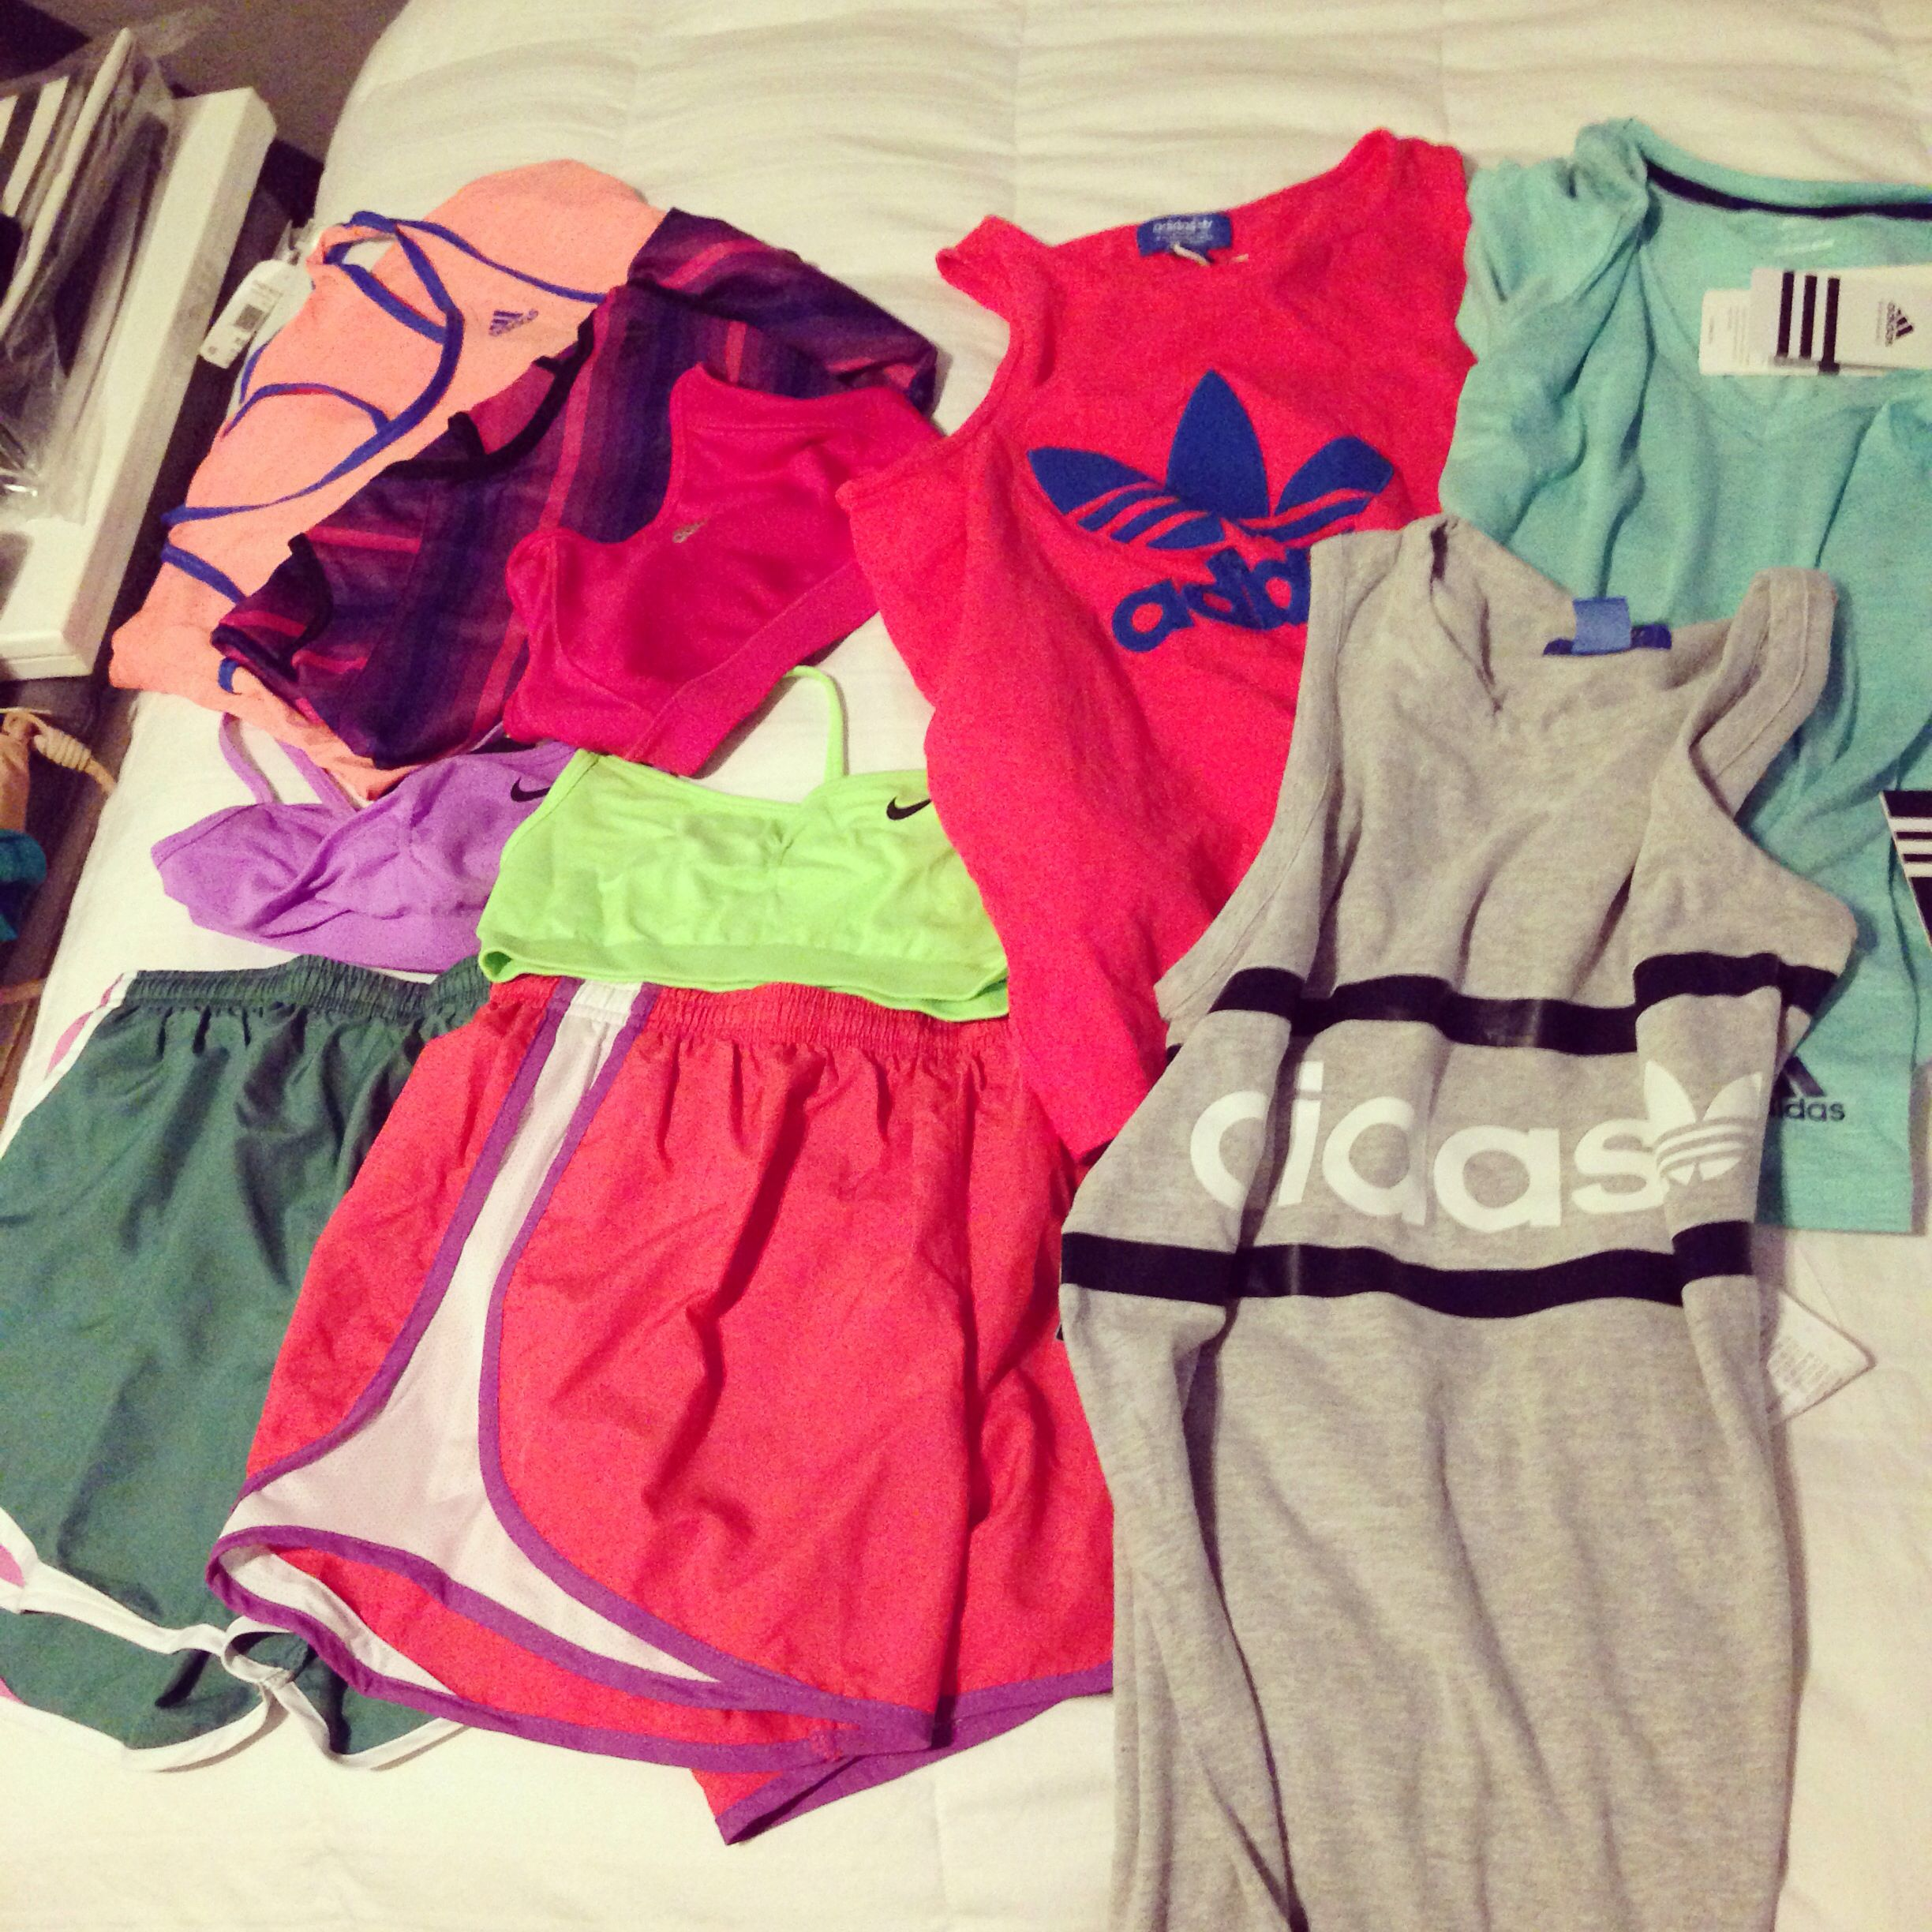 my newest purchases #workout #gear #fit #run #train #adidas #nike #love